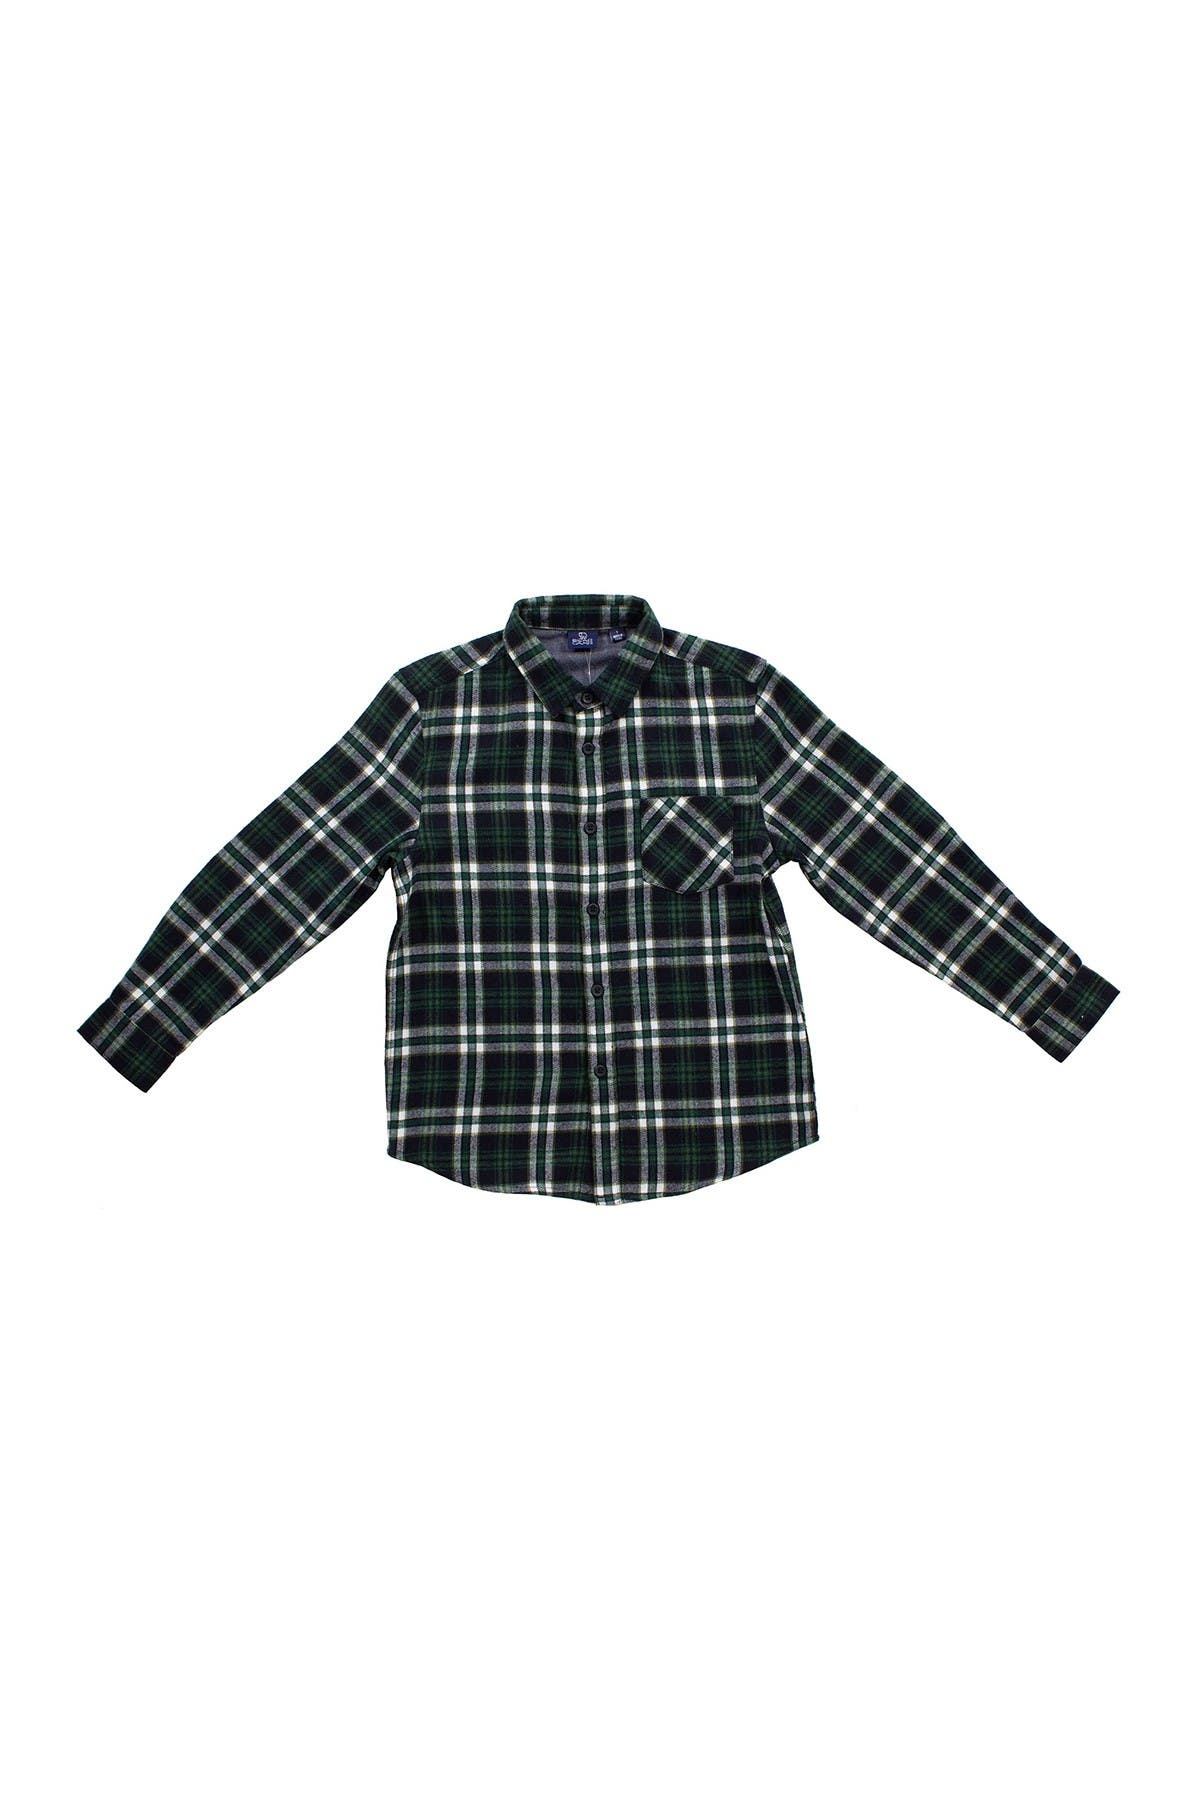 Image of BEAR CAMP Long Sleeve Flannel